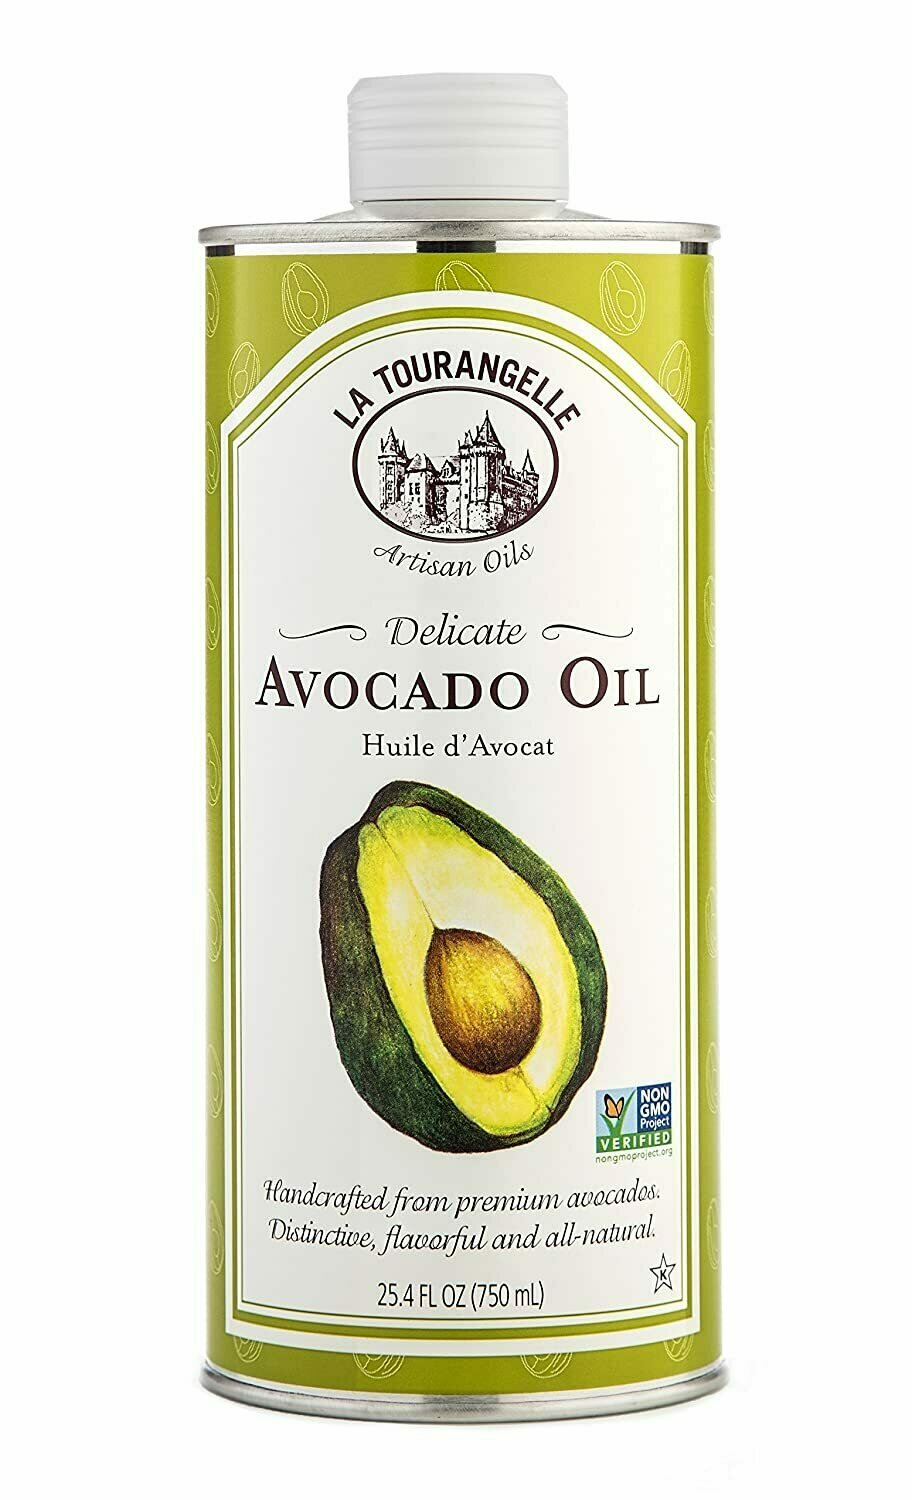 LaTourangelle - Avocado Oil 500ml